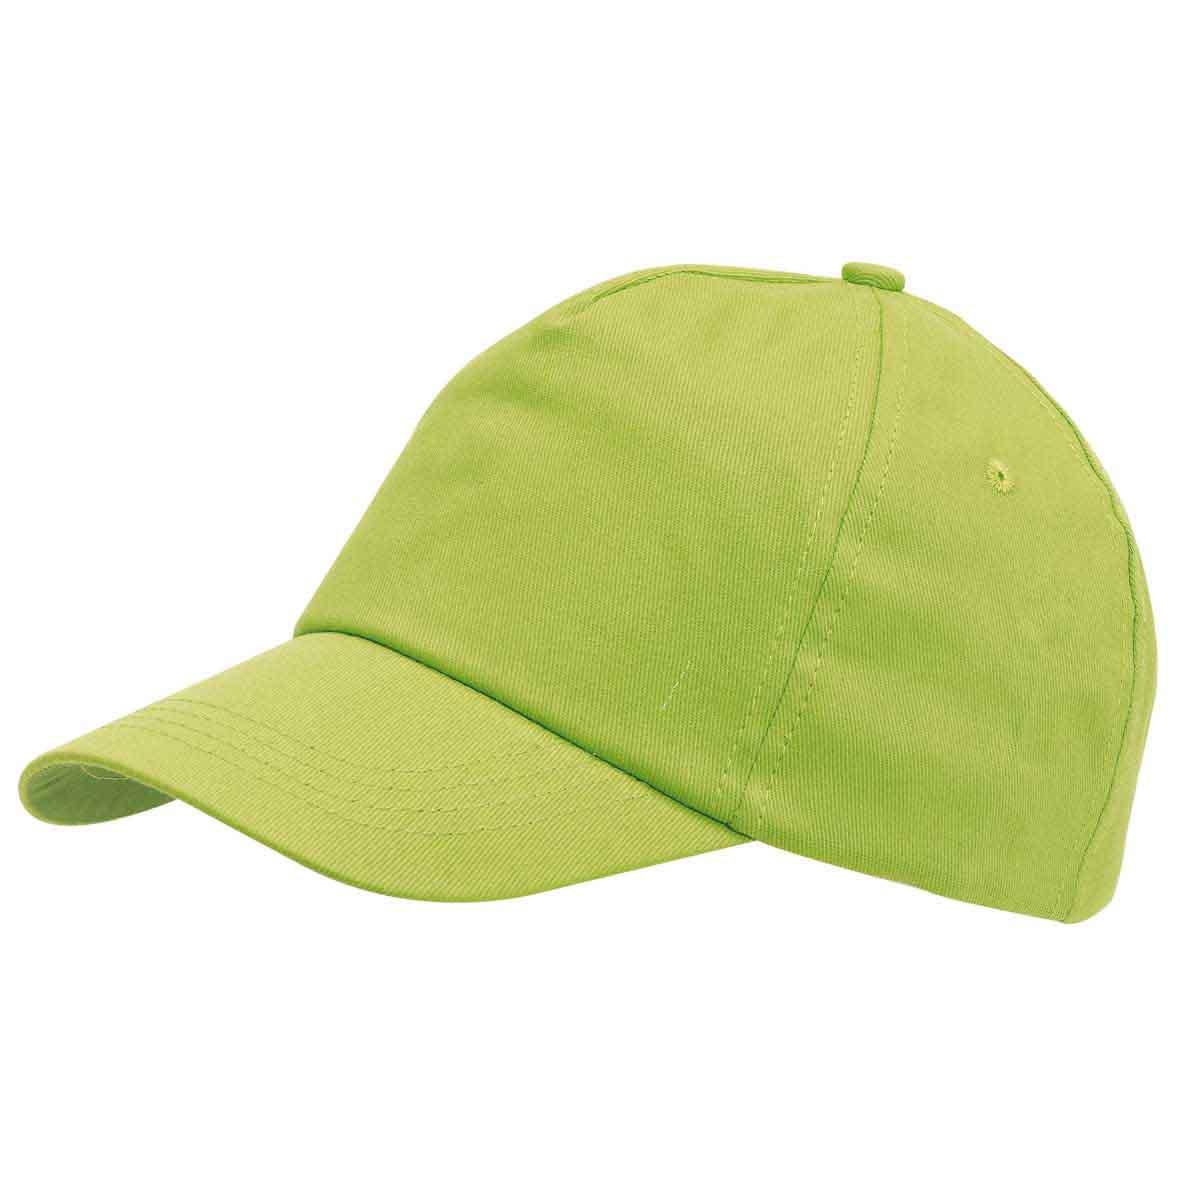 5 panel cap 'Favourite' - Light Green ins-0702050